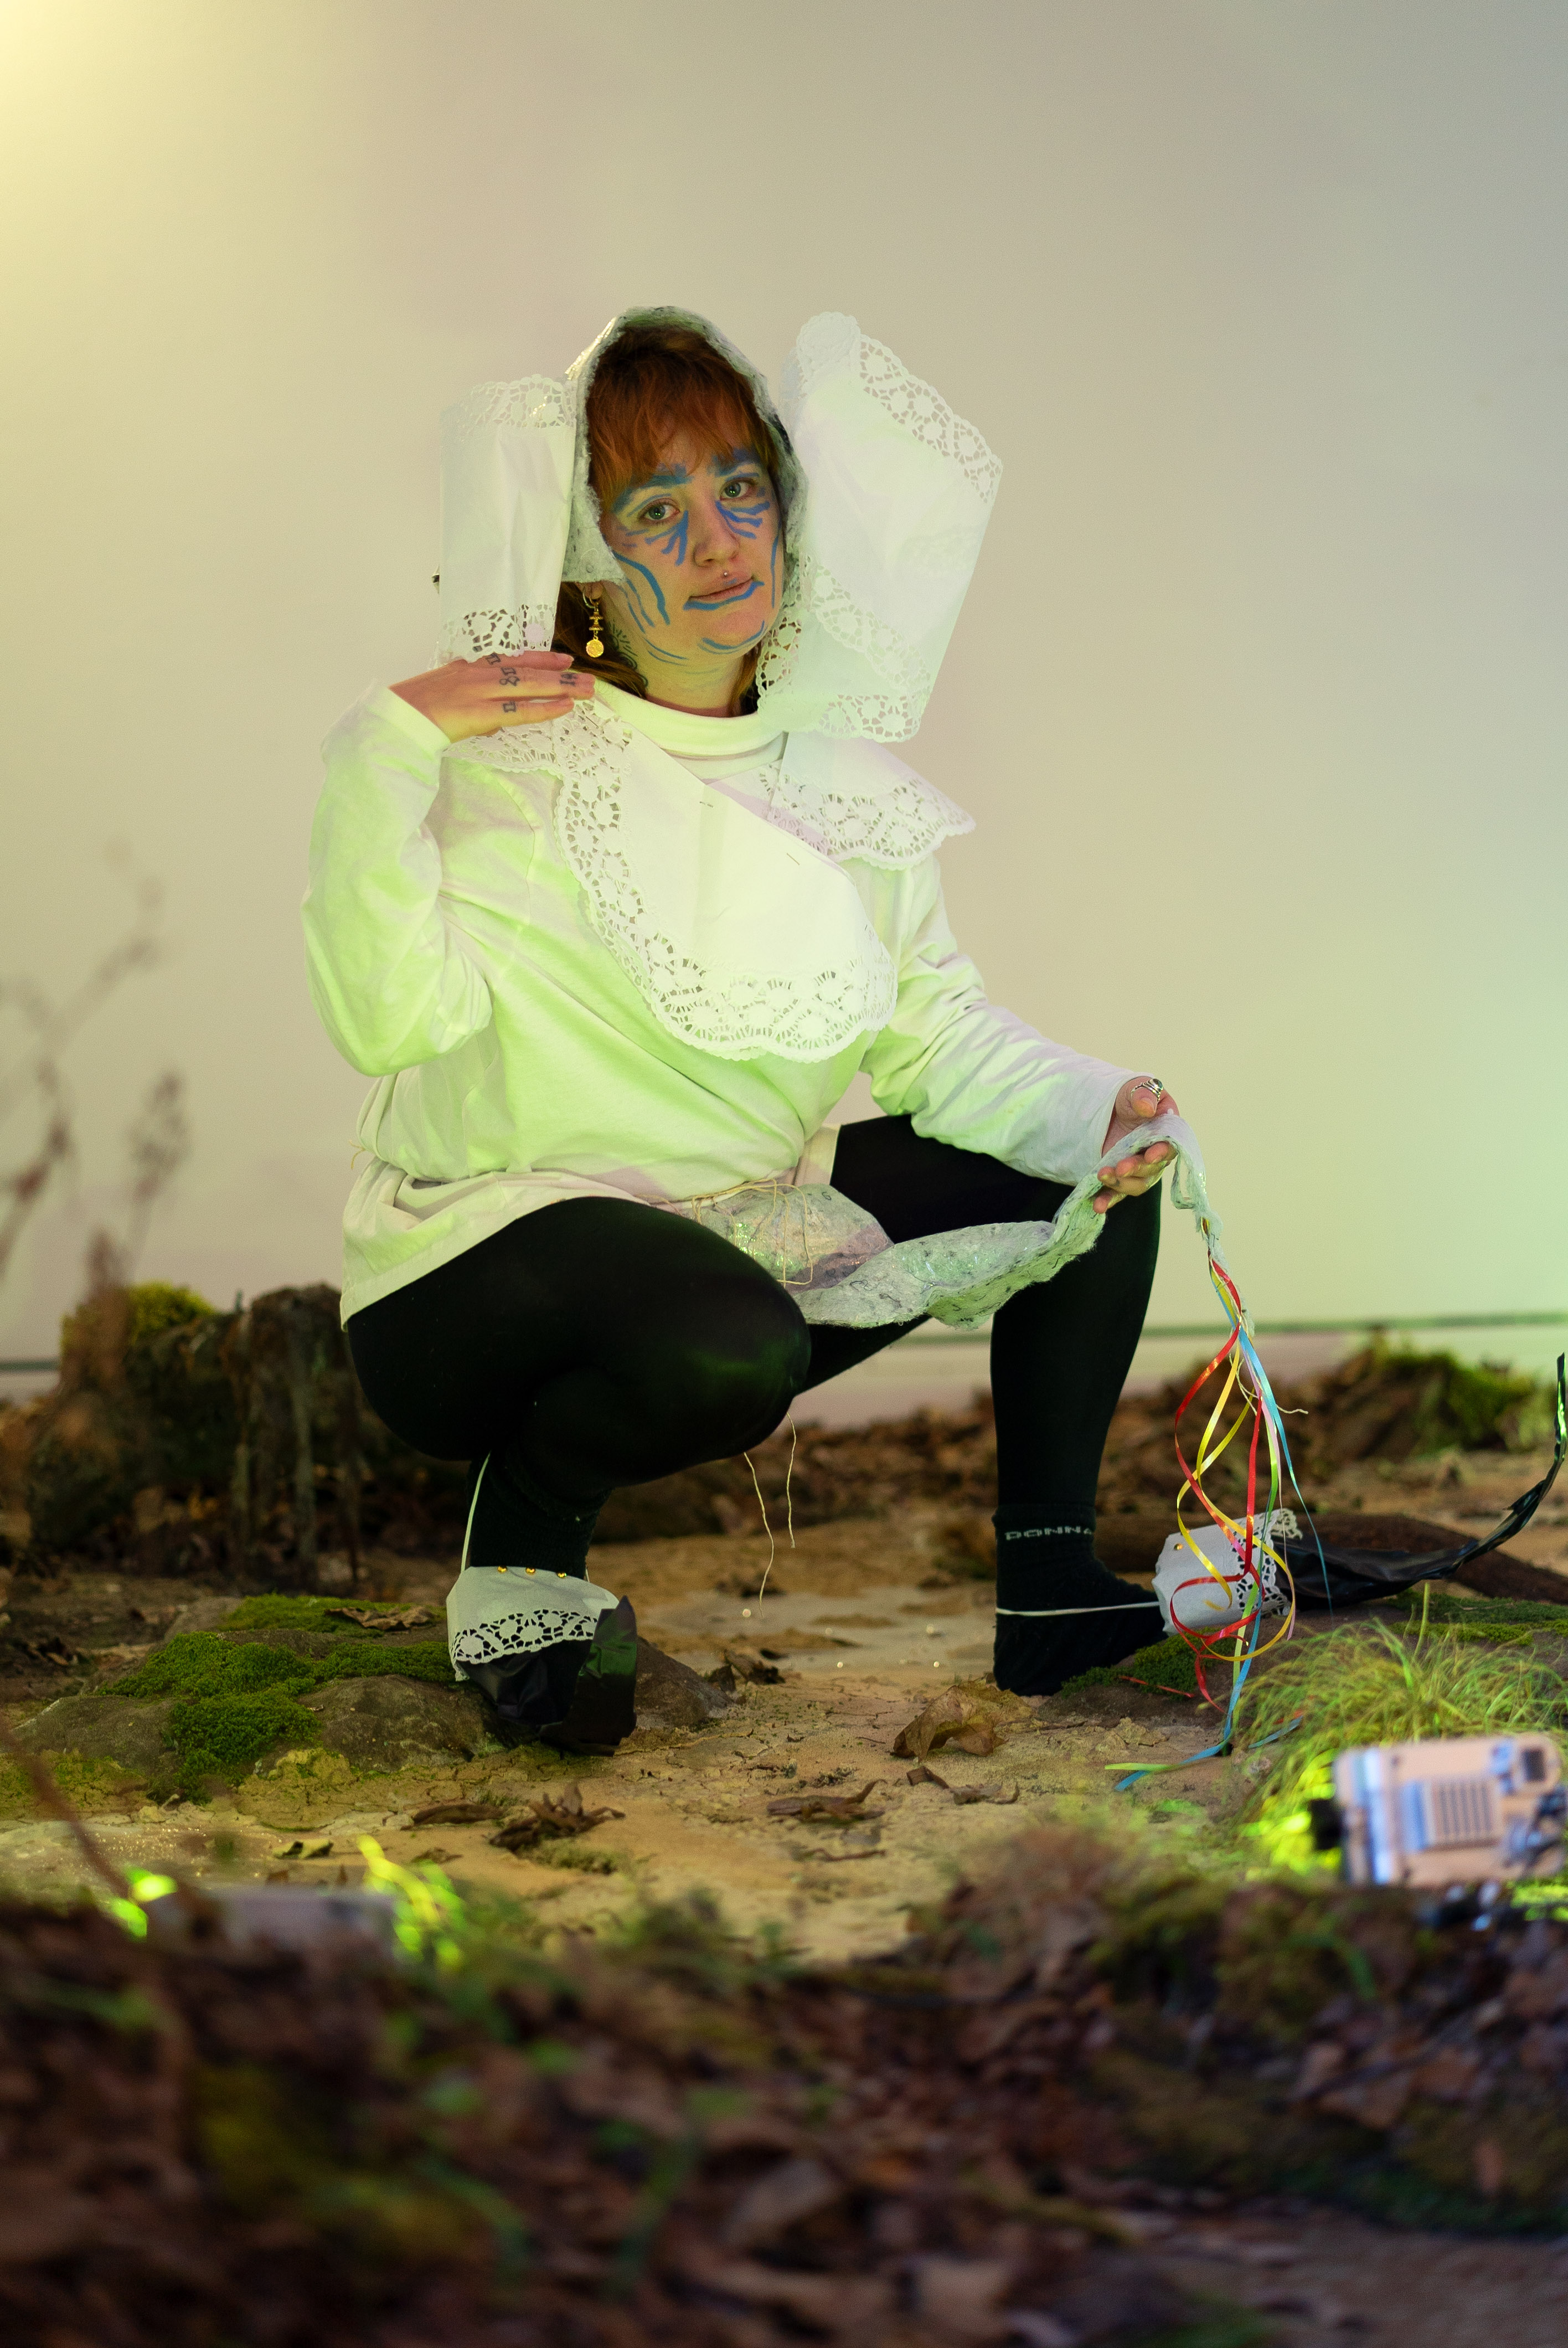 The photo shows a person posing in a squatting position. They are wearing a headdress and a top made of white lace, black leggings and homemade goblin shoes made of black gaffer and white lace. They have put their right hand on the right shoulder and look directly into the camera. The person's body is illuminated by a green light on the ground. The ground is an artificial swamp, which consists of soil, moss, dried leaves and grass. The background is a white wall.